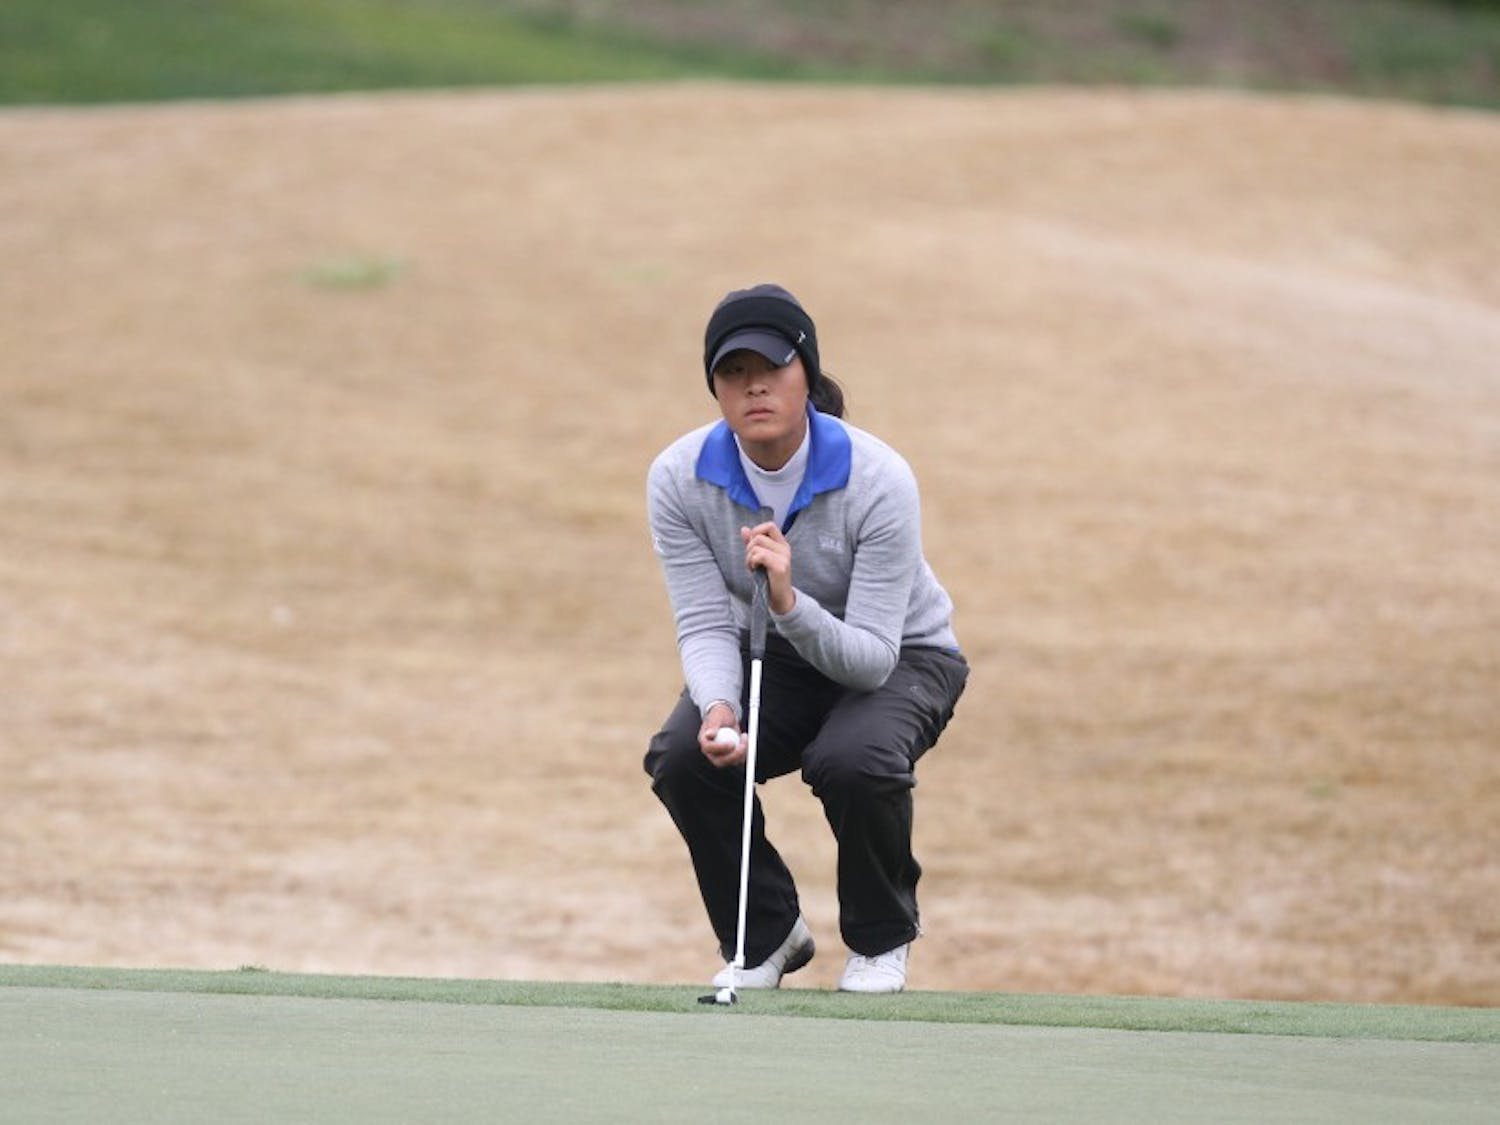 Junior Celine Boutier and the Blue Devils will look to claim their third victory of the season this weekend at the Liz Murphey Collegiate.